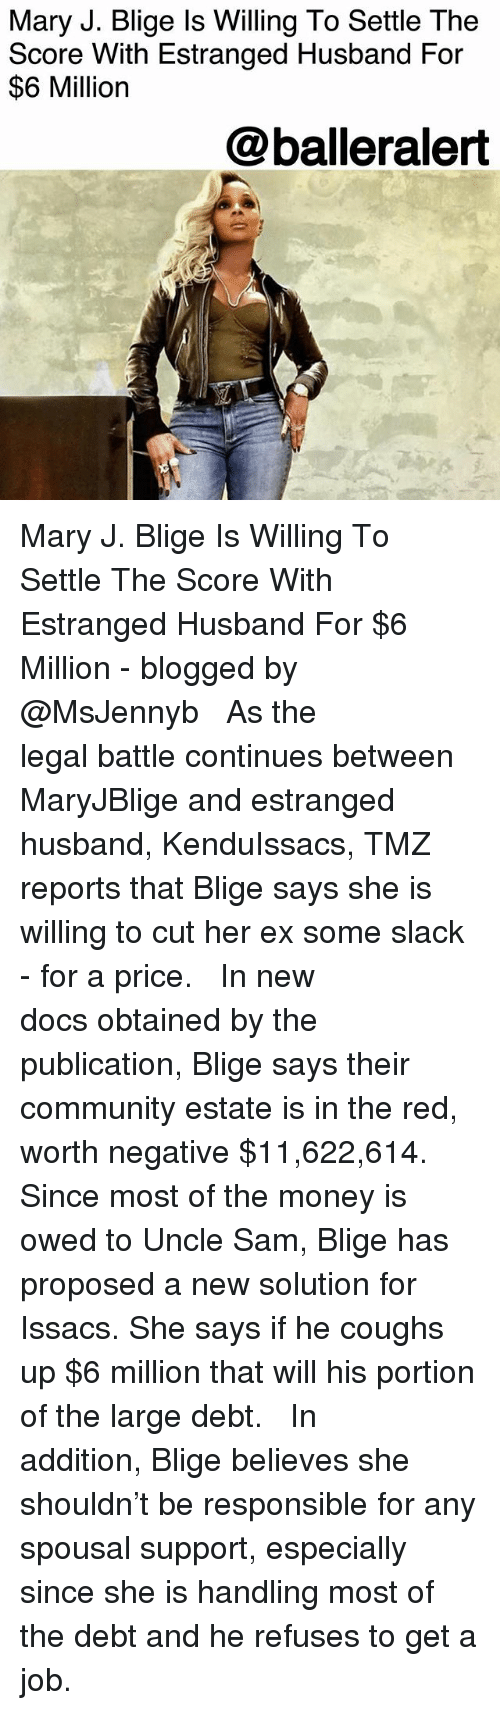 Community, Memes, and Money: Mary J. Blige ls Willing To Settle The  Score With Estranged Husband For  $6 Million  @balleralert Mary J. Blige Is Willing To Settle The Score With Estranged Husband For $6 Million - blogged by @MsJennyb ⠀⠀⠀⠀⠀⠀⠀ ⠀⠀⠀⠀⠀⠀⠀ As the legal battle continues between MaryJBlige and estranged husband, KenduIssacs, TMZ reports that Blige says she is willing to cut her ex some slack - for a price. ⠀⠀⠀⠀⠀⠀⠀ ⠀⠀⠀⠀⠀⠀⠀ In new docs obtained by the publication, Blige says their community estate is in the red, worth negative $11,622,614. Since most of the money is owed to Uncle Sam, Blige has proposed a new solution for Issacs. She says if he coughs up $6 million that will his portion of the large debt. ⠀⠀⠀⠀⠀⠀⠀ ⠀⠀⠀⠀⠀⠀⠀ In addition, Blige believes she shouldn't be responsible for any spousal support, especially since she is handling most of the debt and he refuses to get a job.